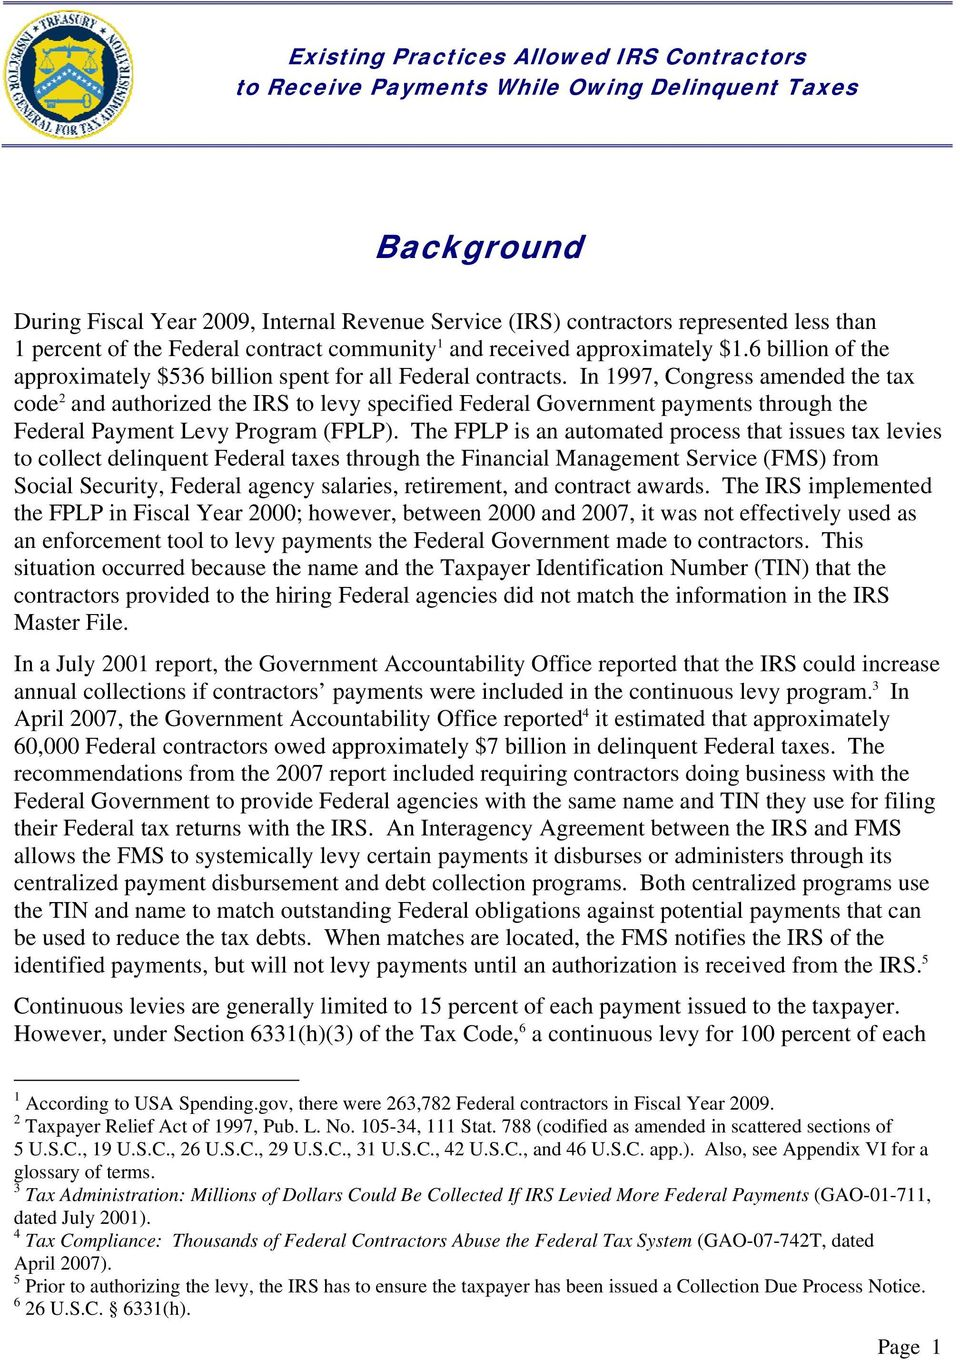 In 1997, Congress amended the tax code 2 and authorized the IRS to levy specified Federal Government payments through the Federal Payment Levy Program (FPLP).